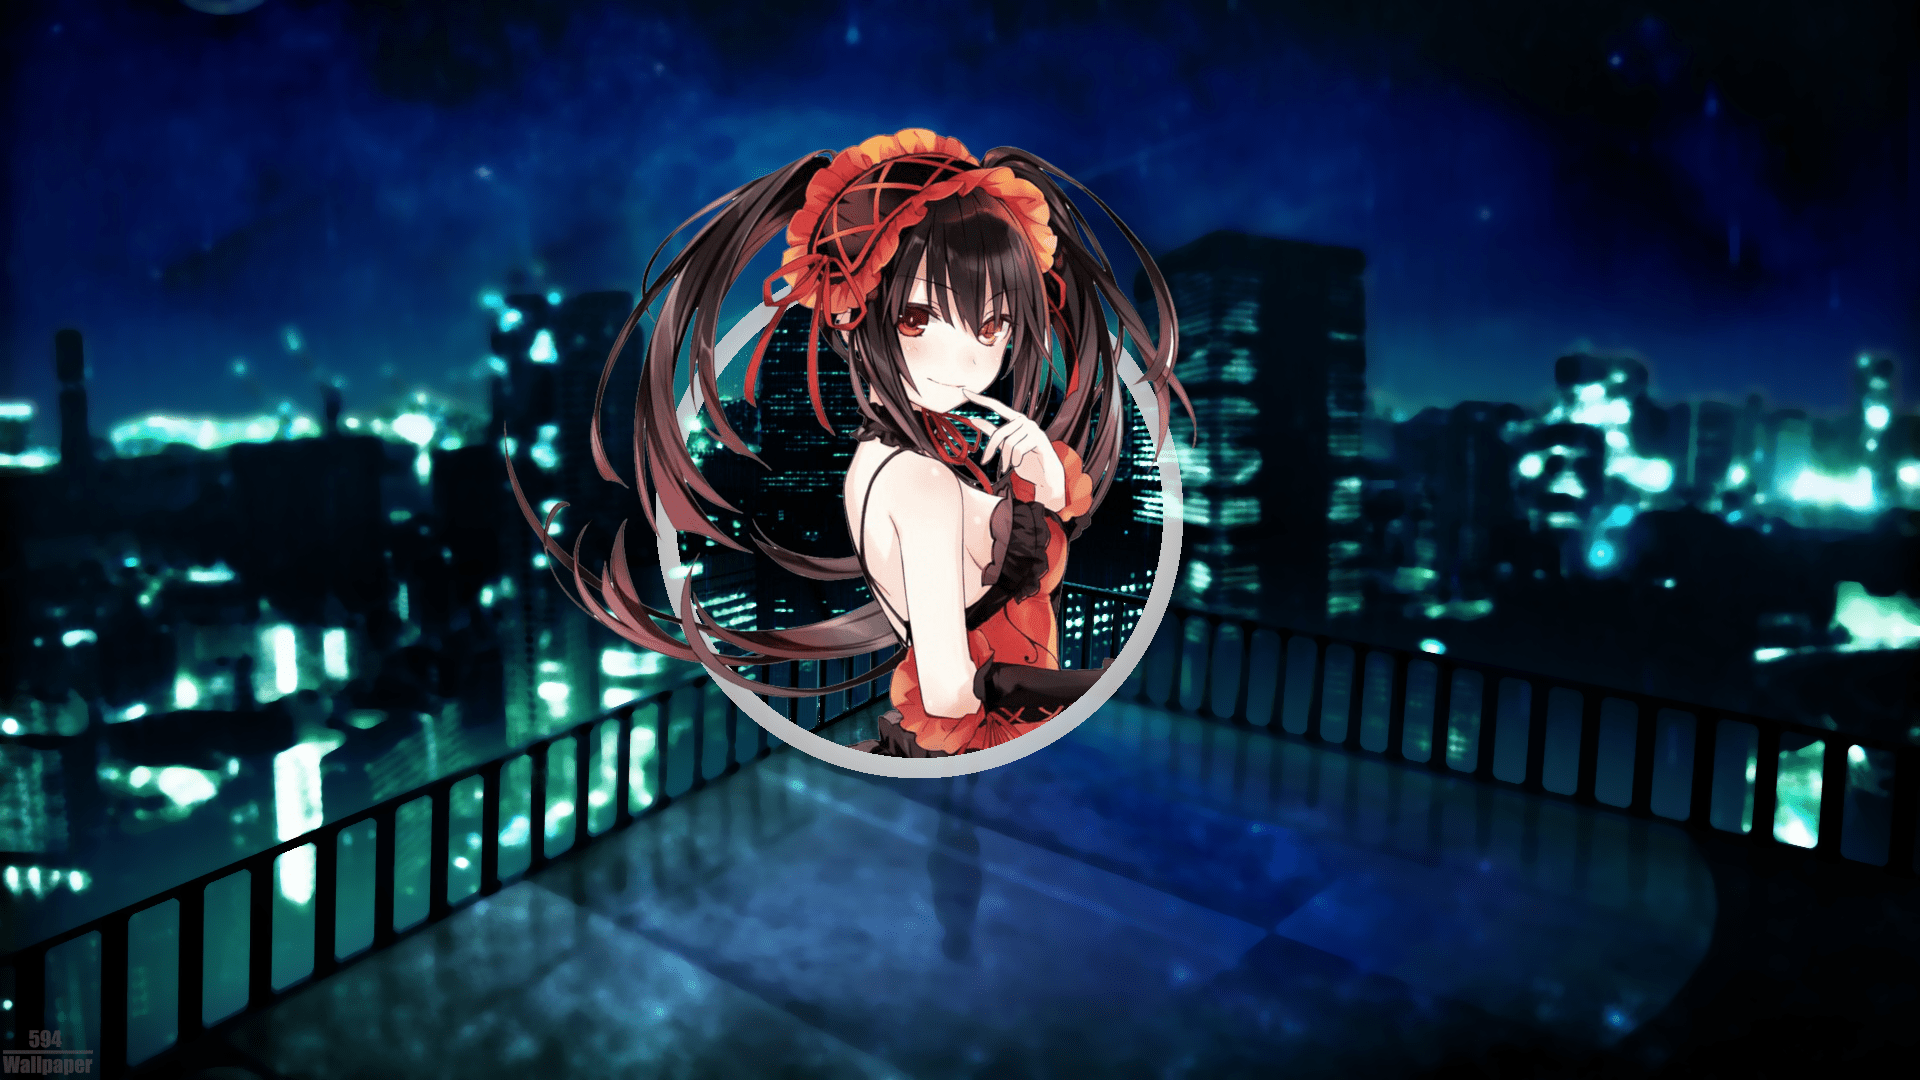 1366x768 animated movies wallpapers for 1366x768 resolution devices. Wallpaper : Wallpaper anime, Date A Live, night view ...